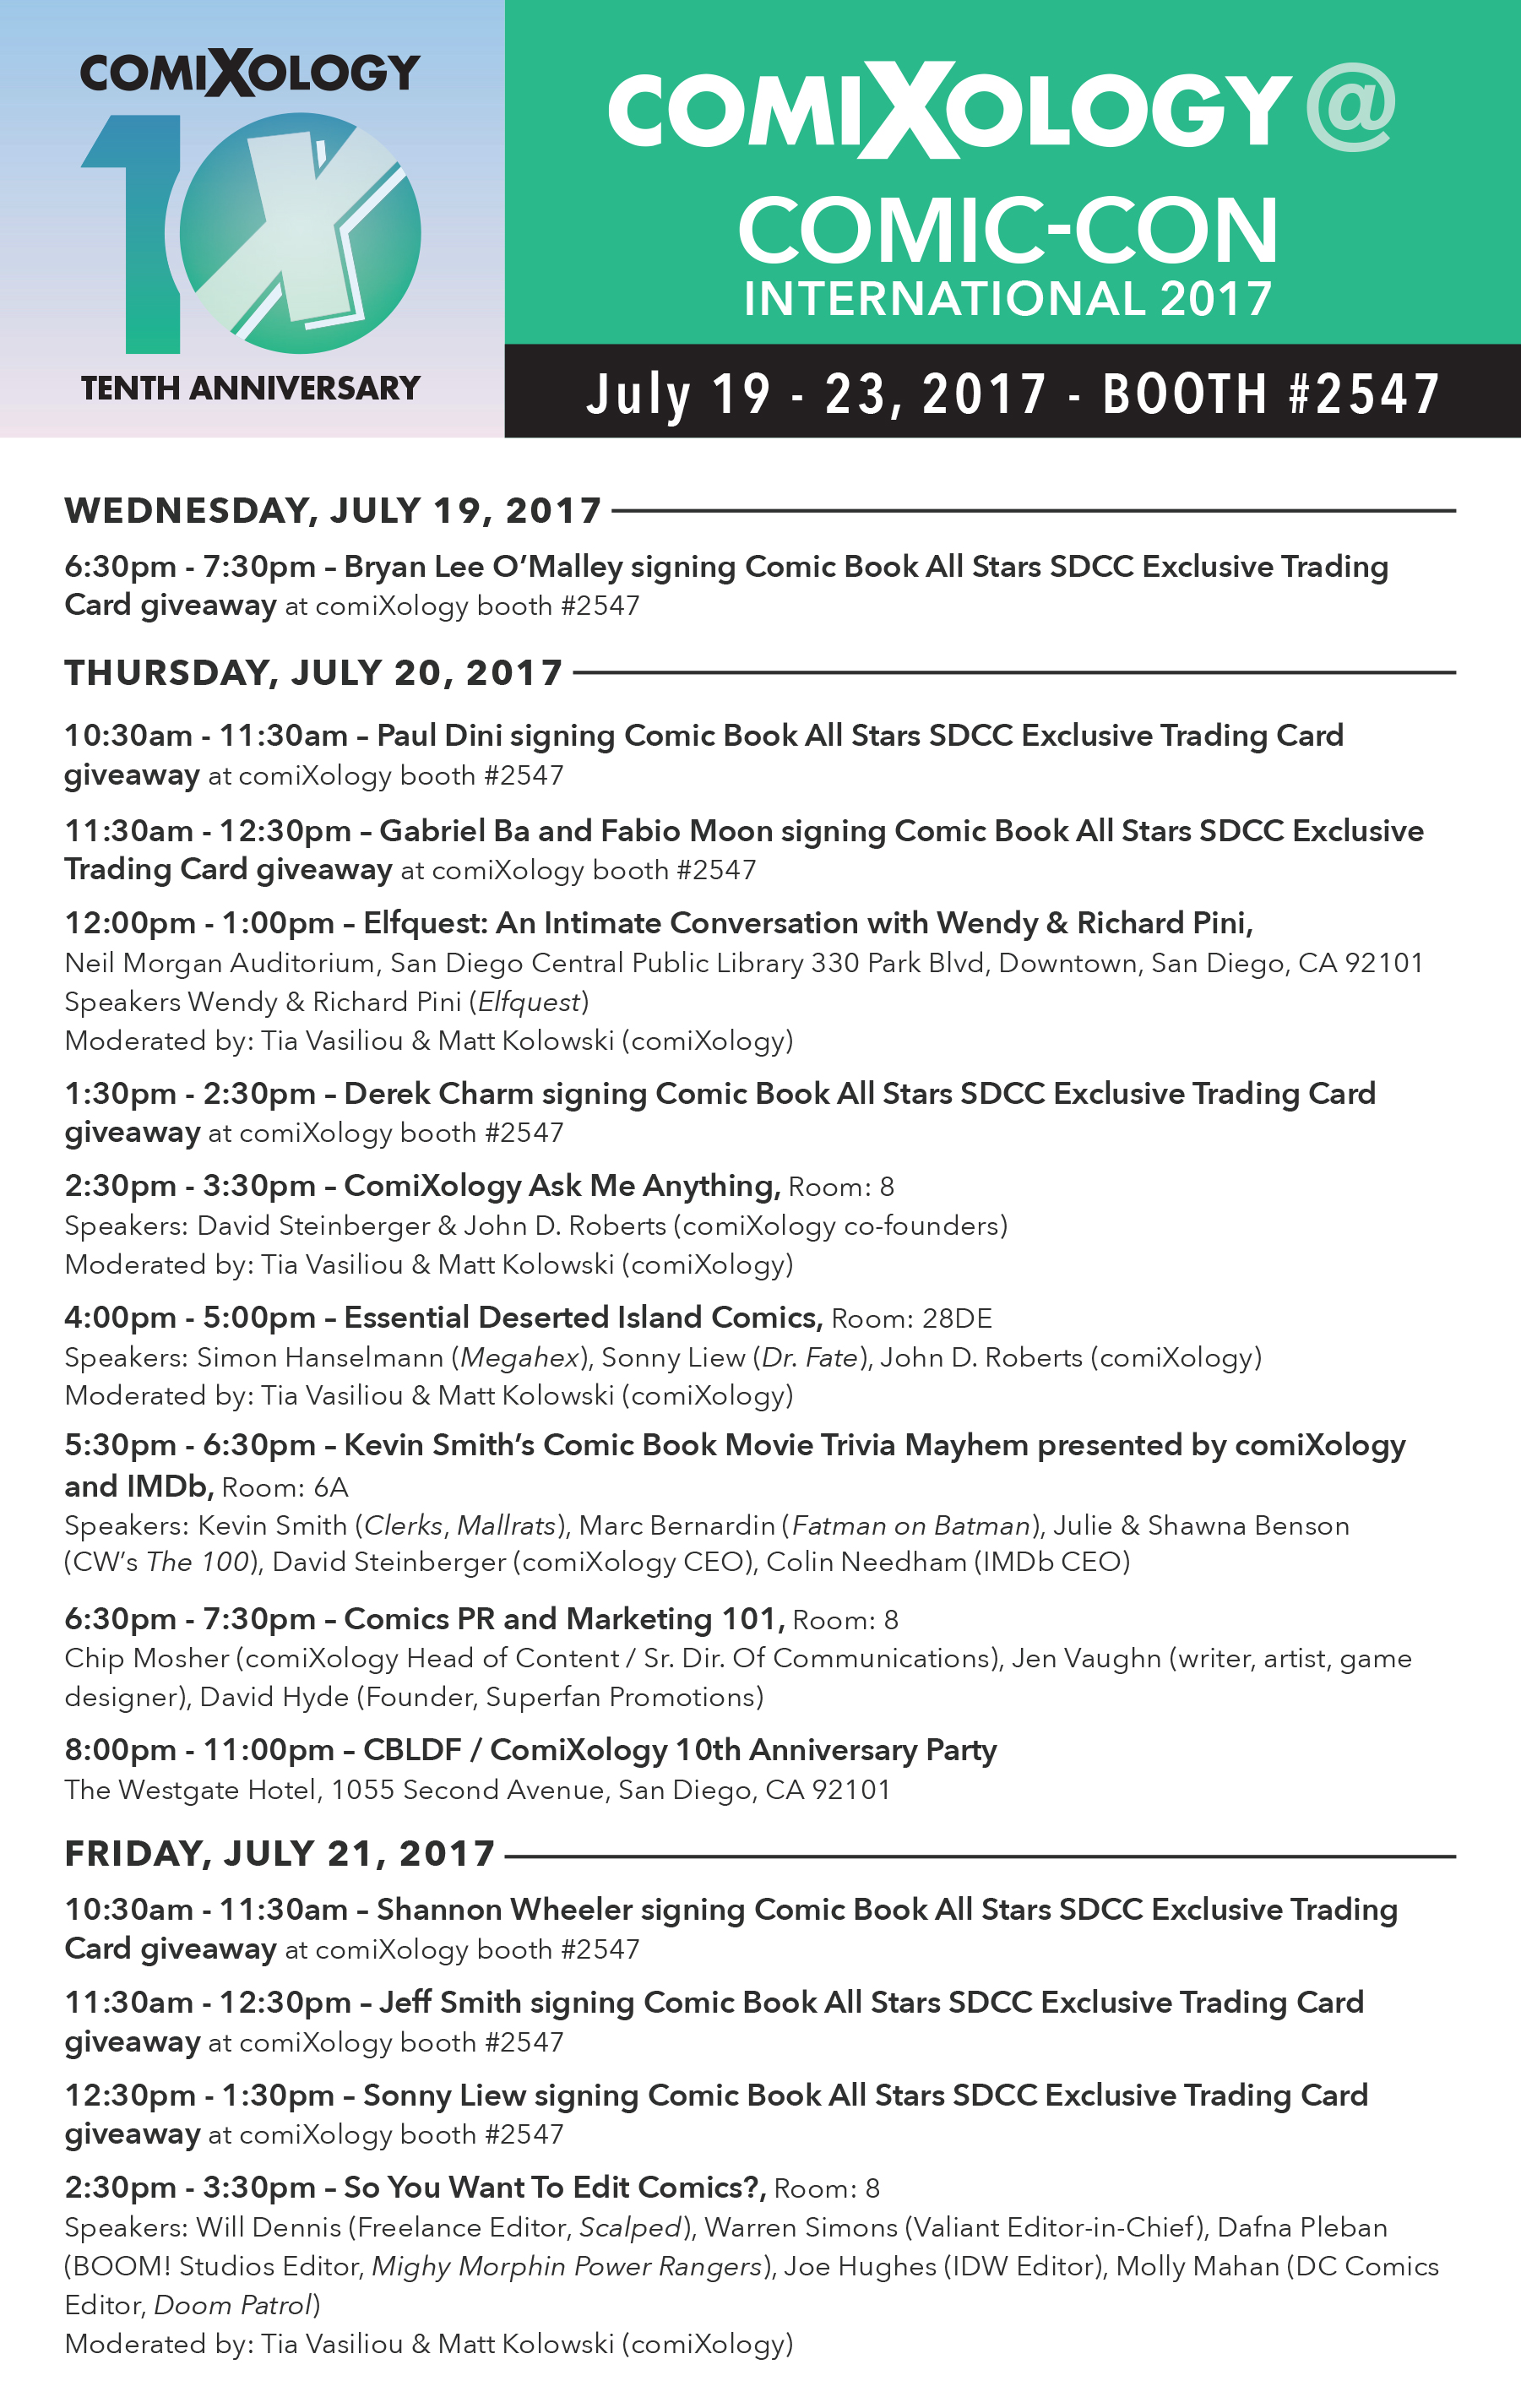 2017_comiXology_SDCC_schedule_Wed-Fri_Updated.jpg